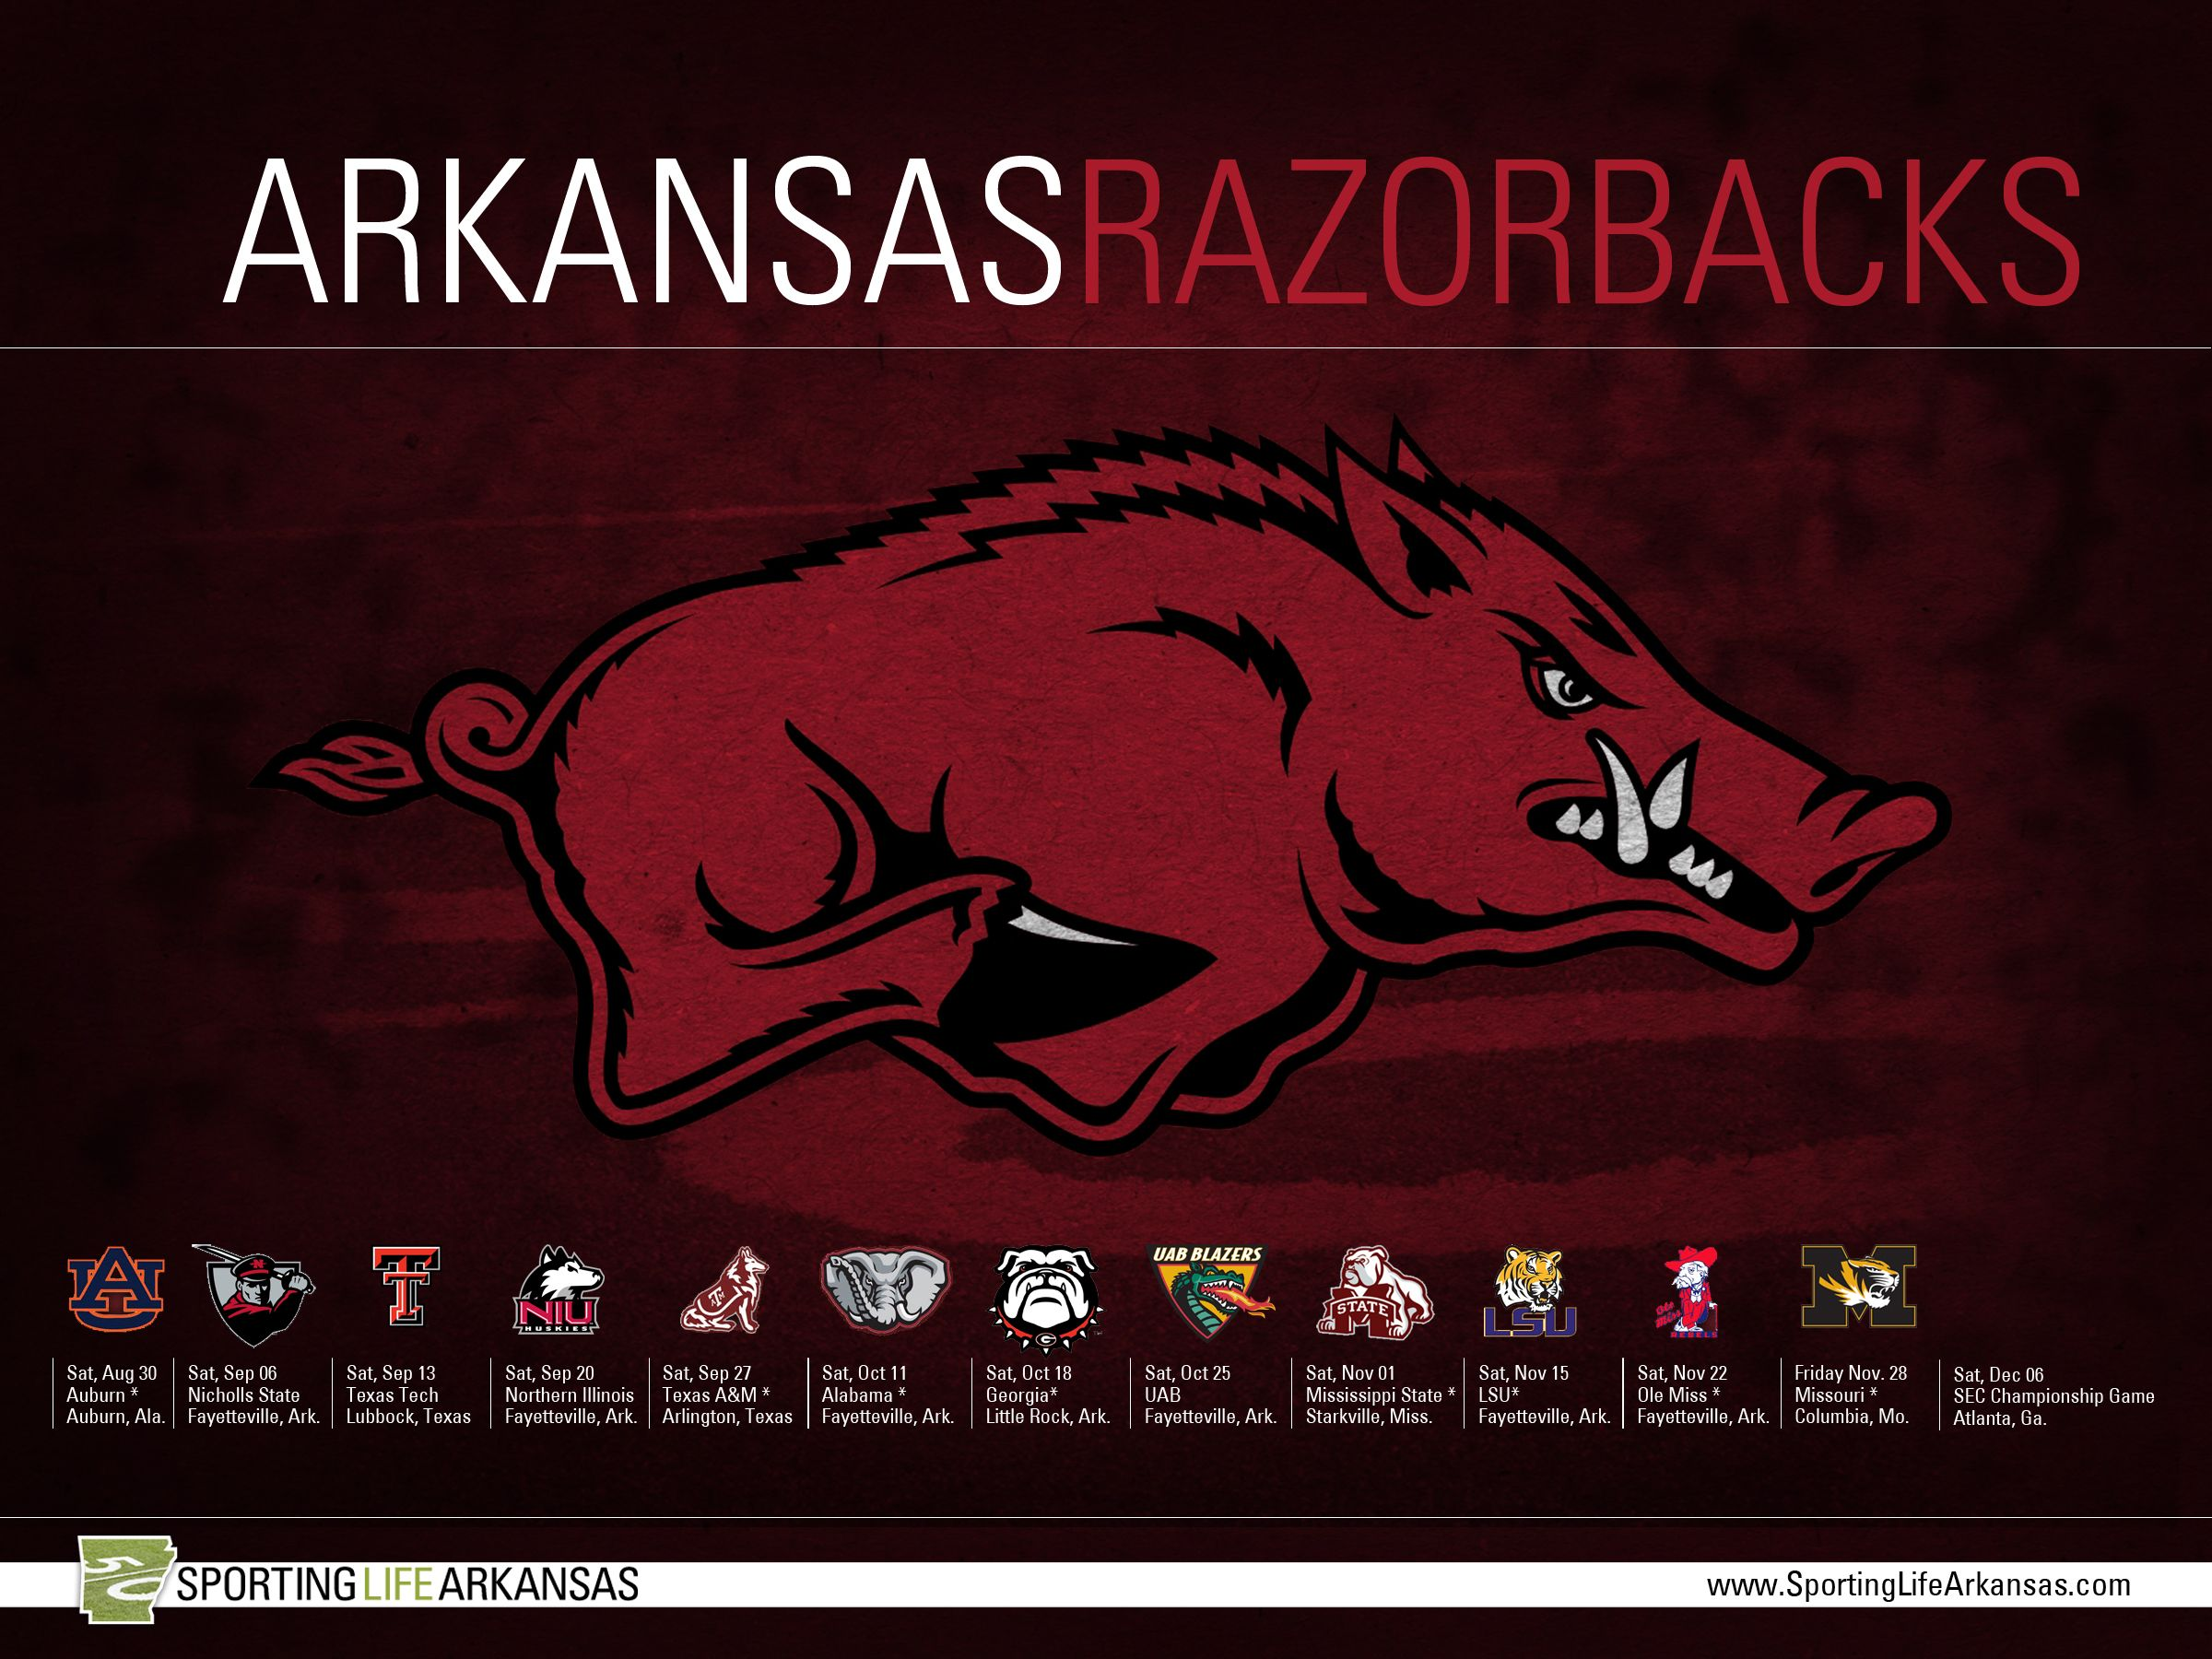 Arkansas Wallpapers Browser Themes More For Razorbacks Fans Arkansas Razorbacks Football Arkansas Razorbacks Arkansas Football